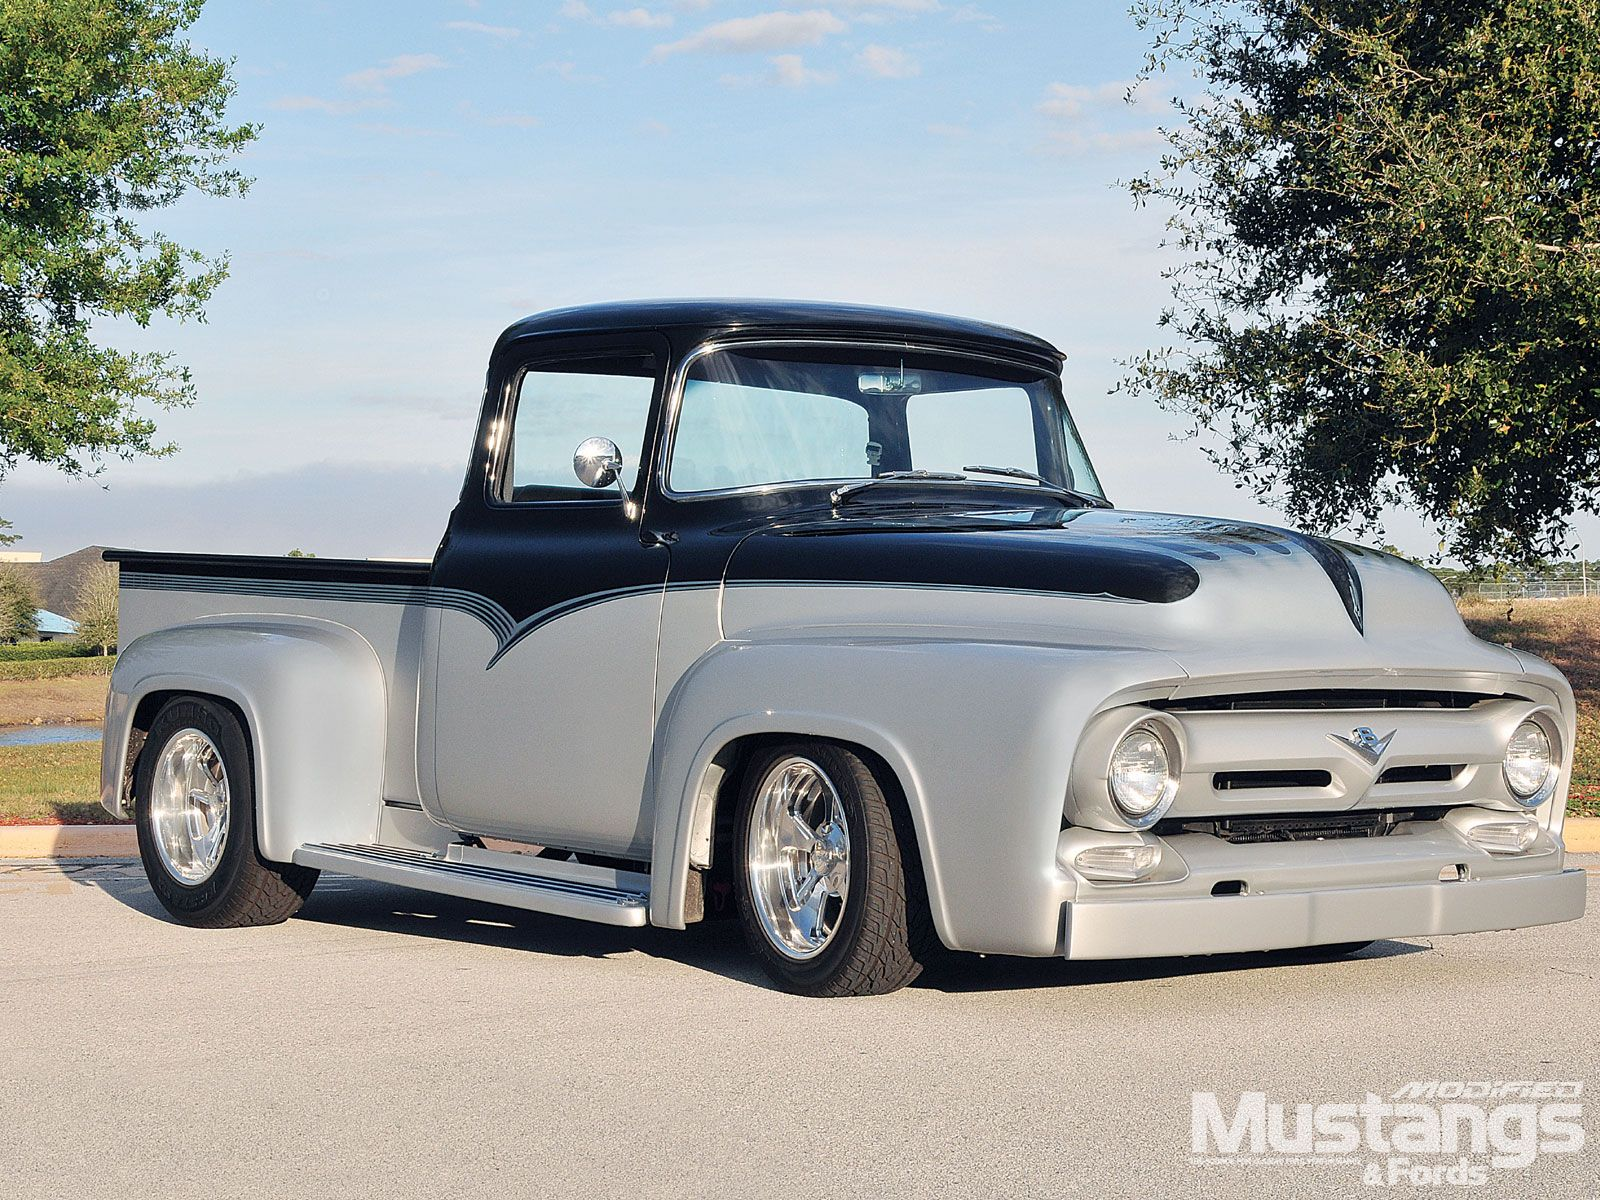 1956 Ford F100 1956 Ford F 100 Front Angle Ford Pickup Trucks Classic Ford Trucks Vintage Pickup Trucks